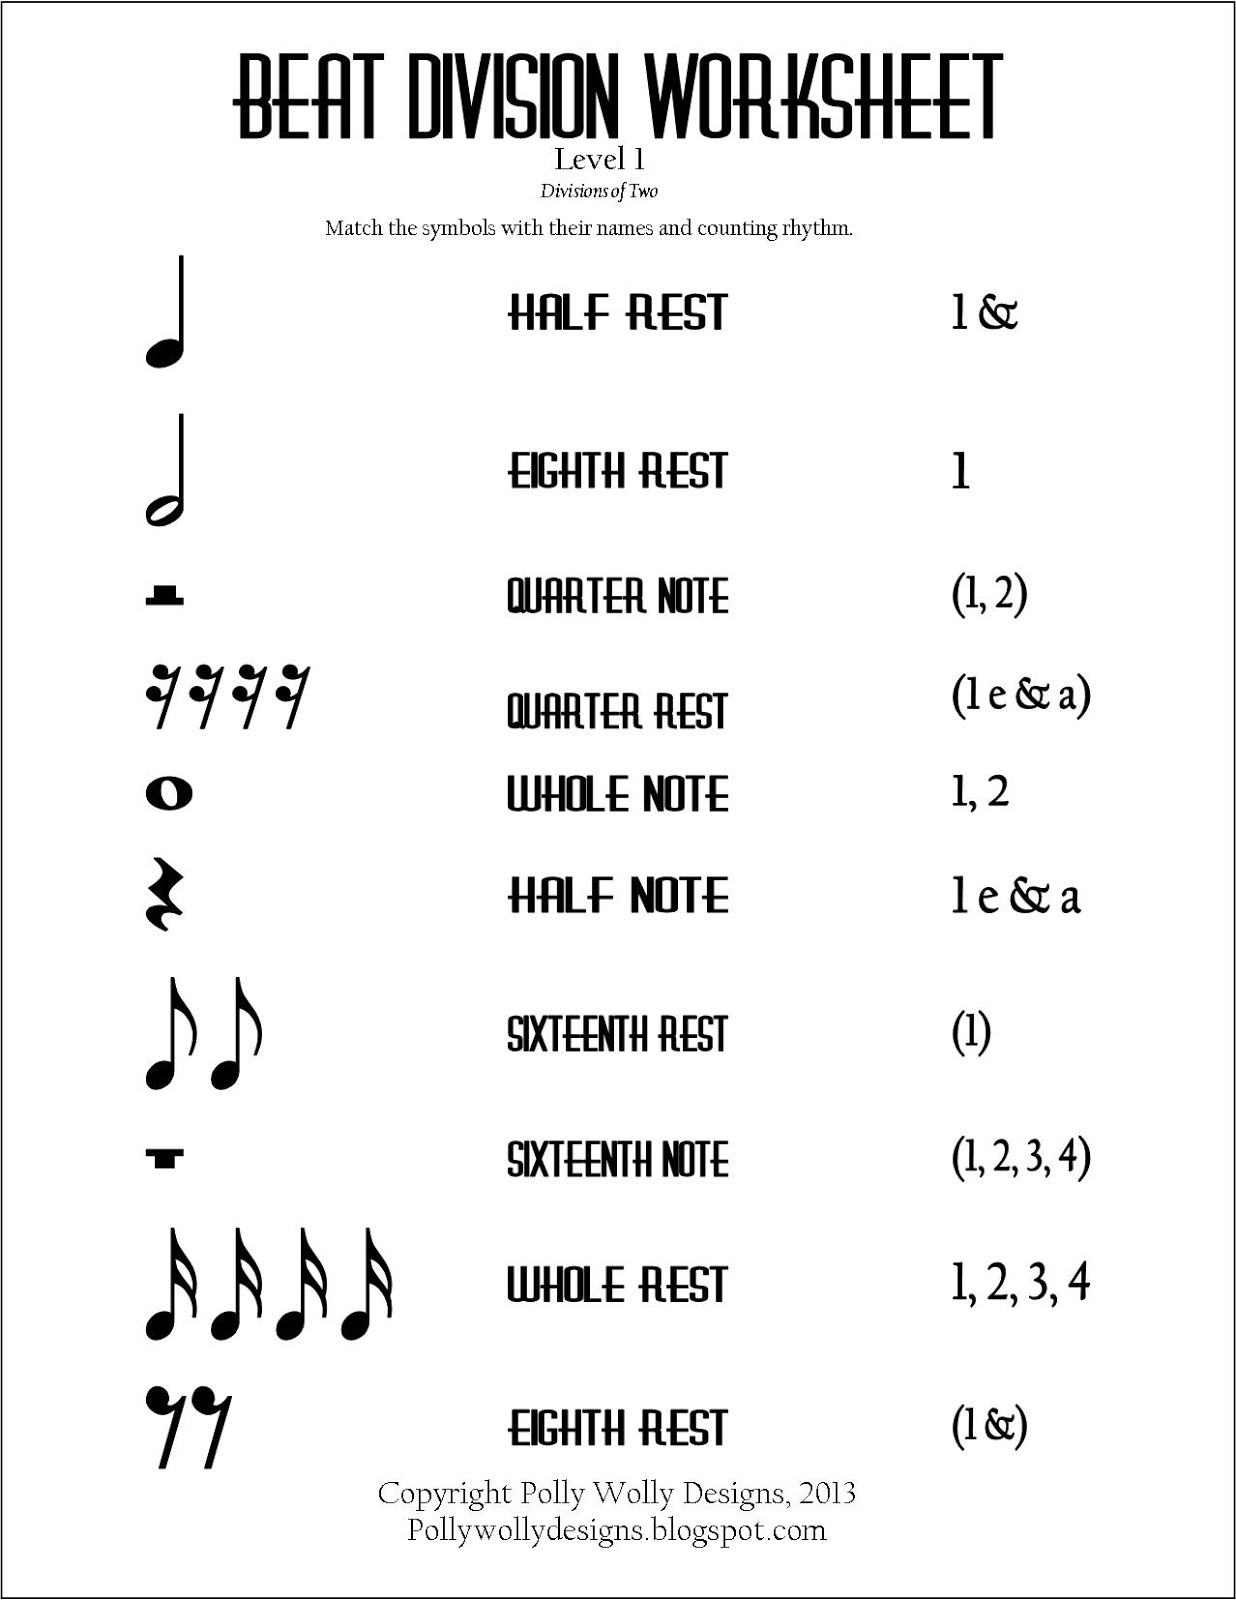 worksheet Beginning Band Worksheets rhythm counting worksheets humorholics polly wolly designs some design work